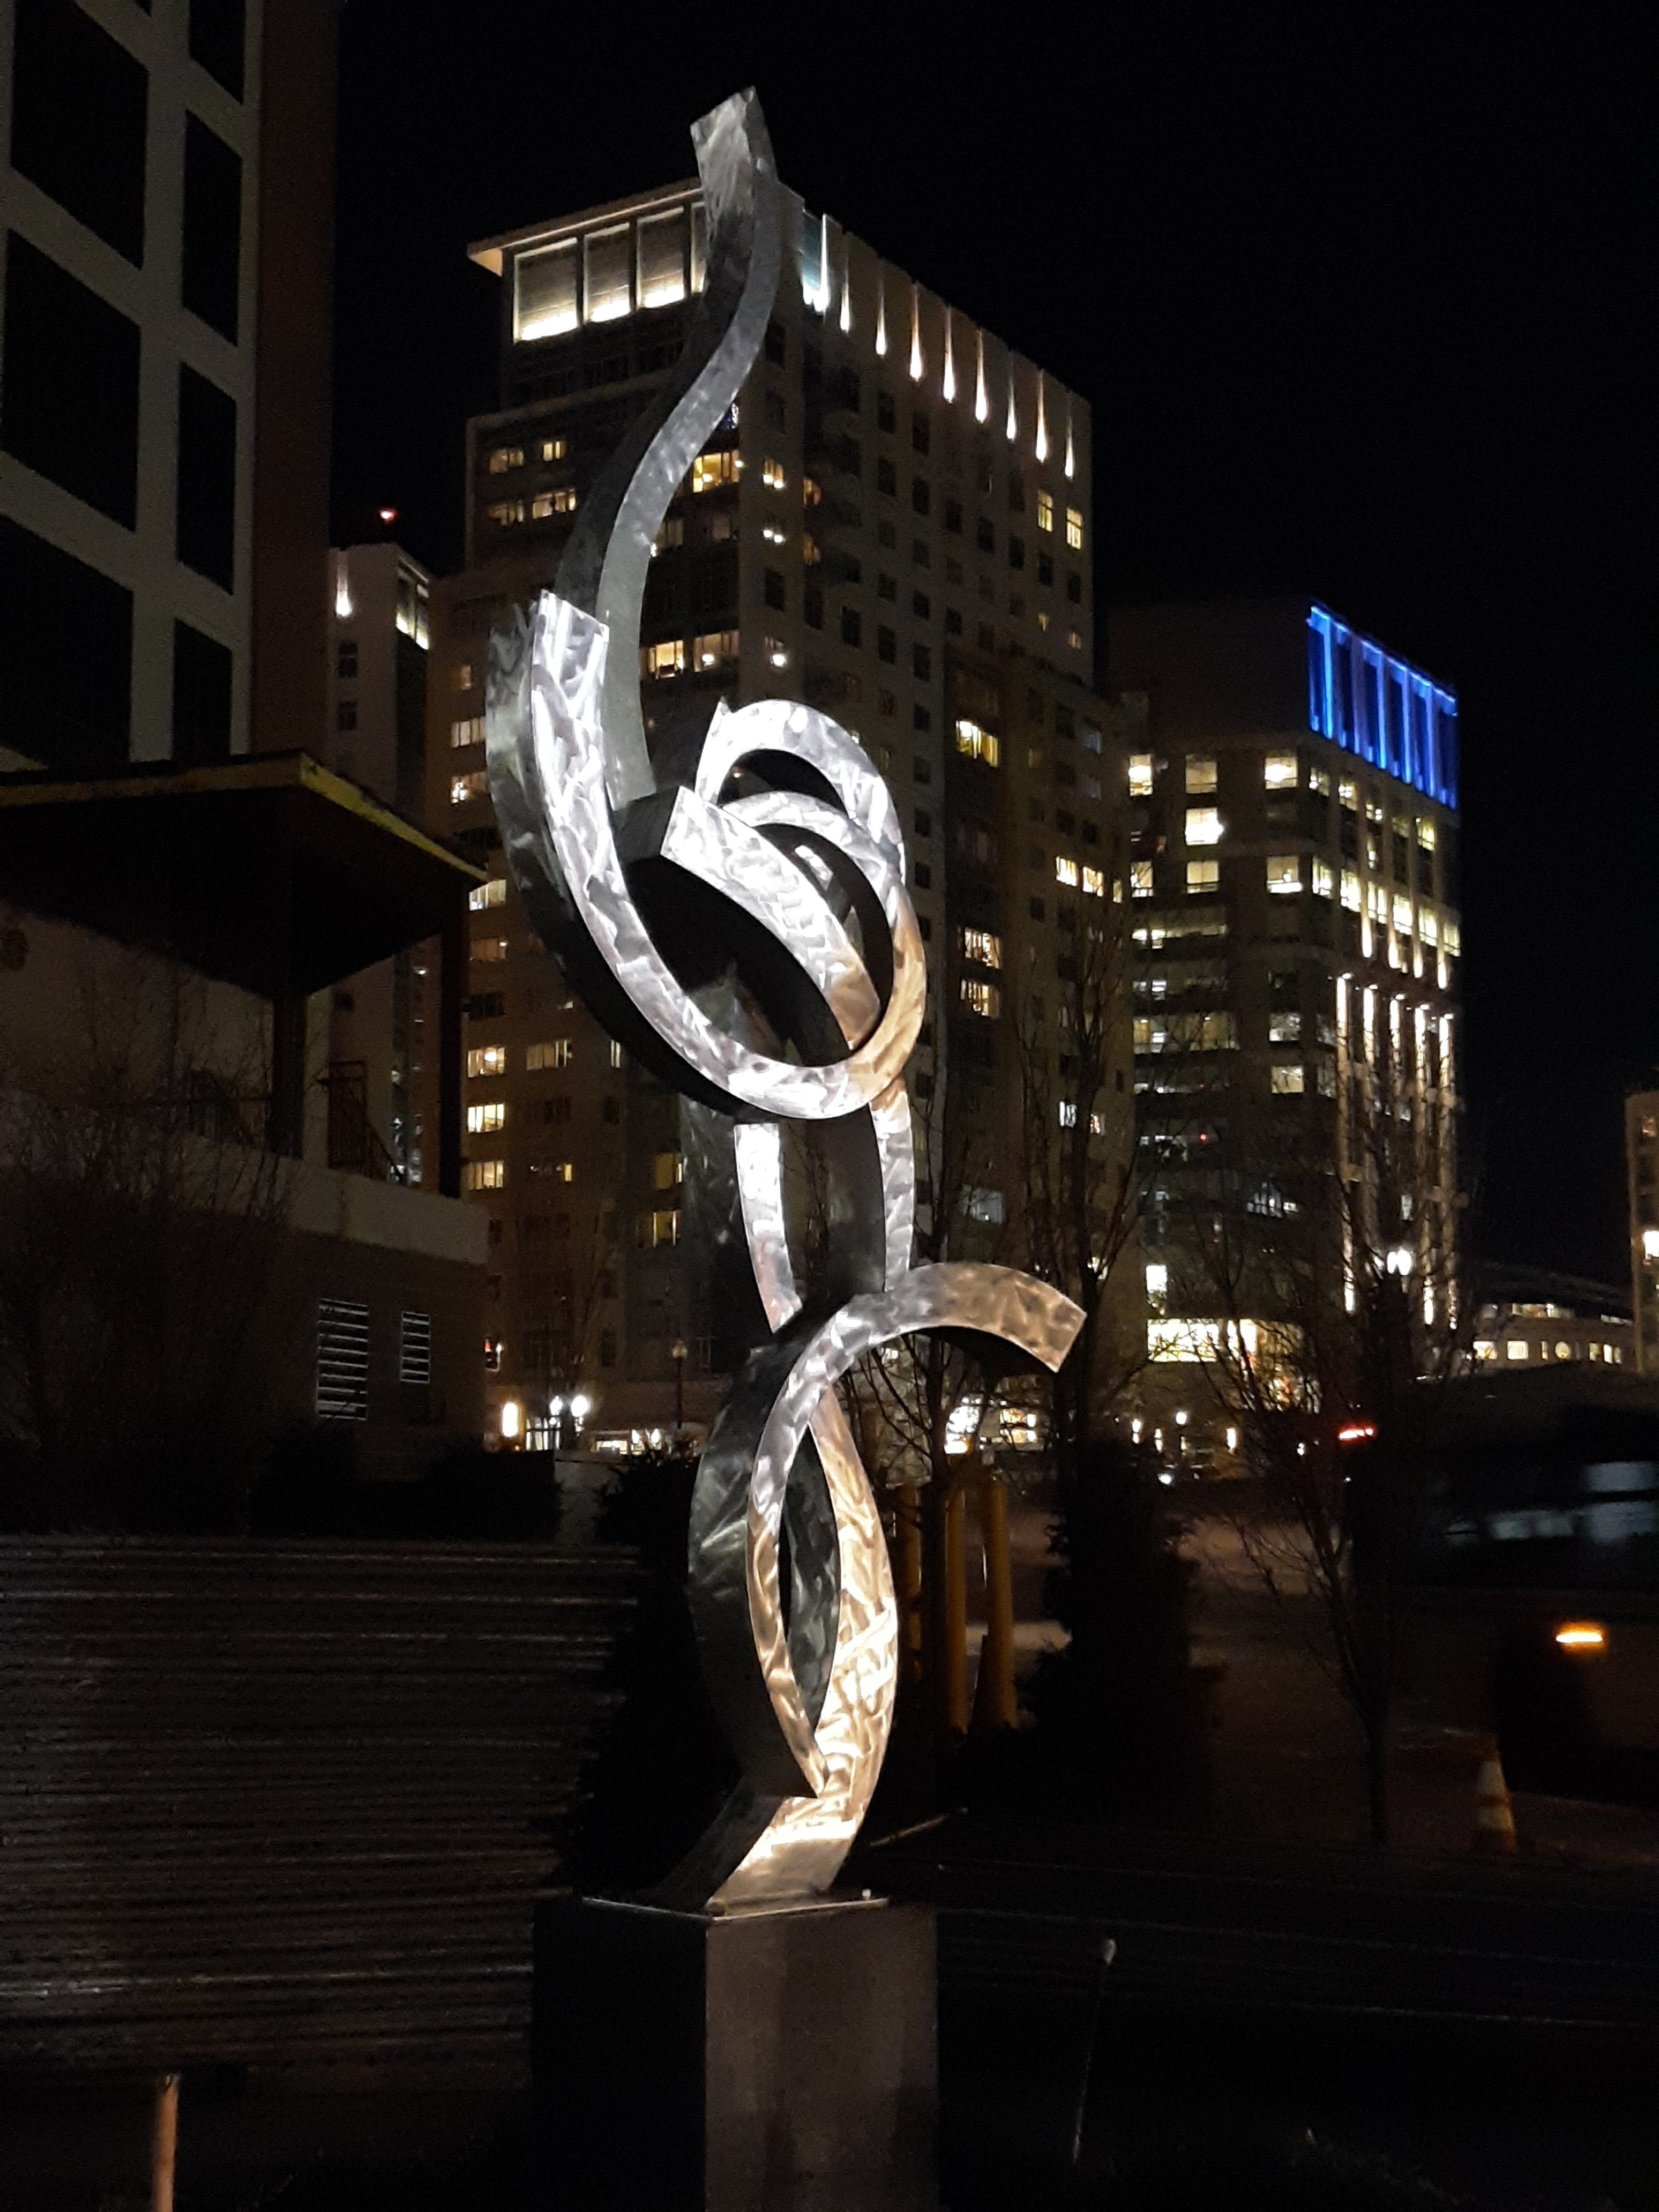 Paul Machalaba: 'SOLD commissions available', 2019 Aluminum Sculpture, Abstract. Artist Description: 13 foot polished fluid abstract commissions available for corporate or residential spaces.  Projects can be designed and built in a similar style to your exact wishes. ...